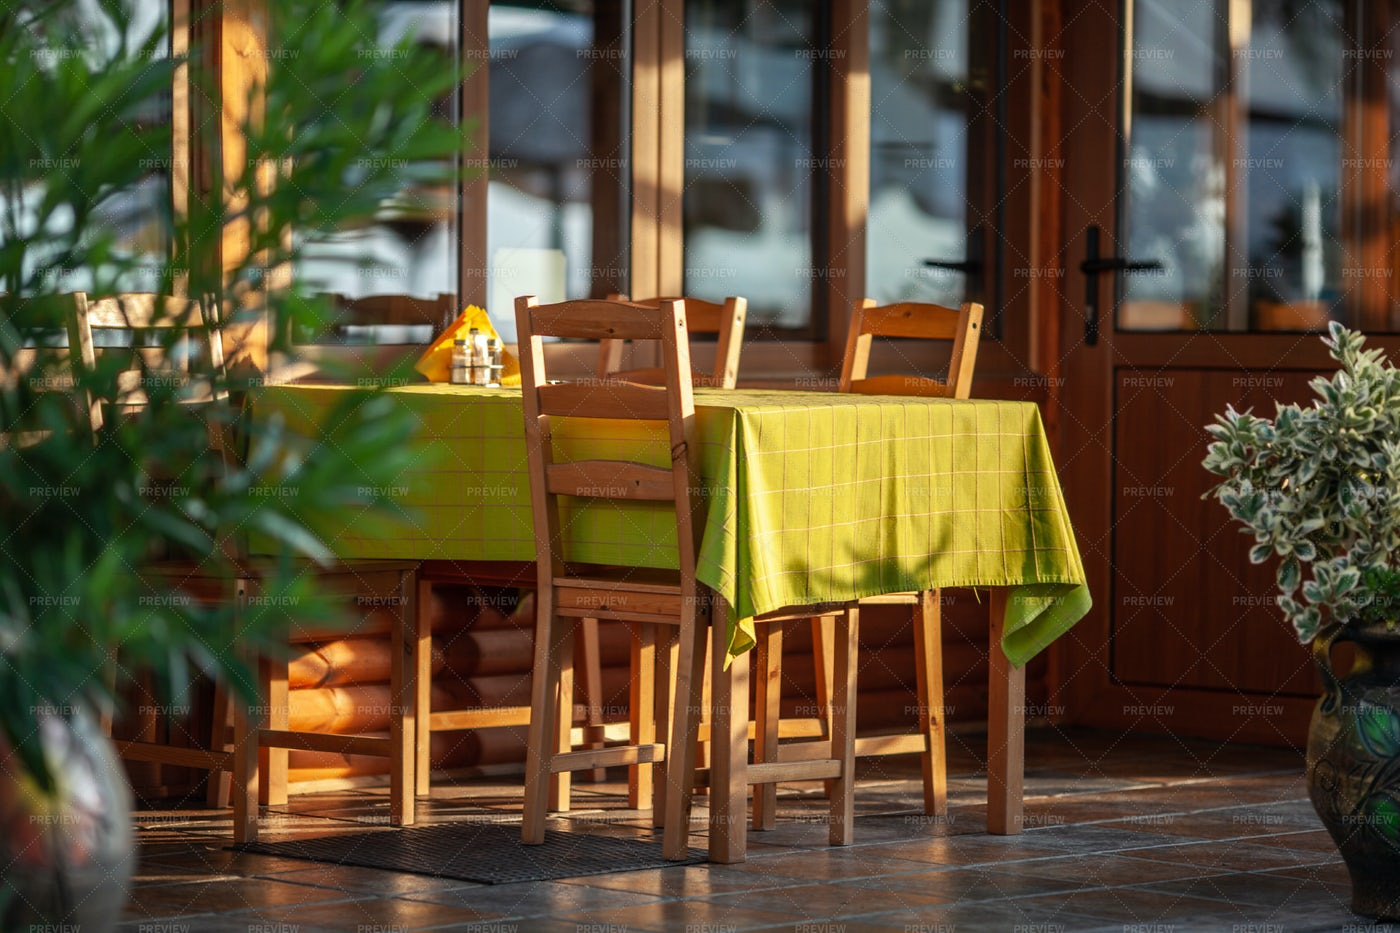 Cafe Table In Sunlight: Stock Photos